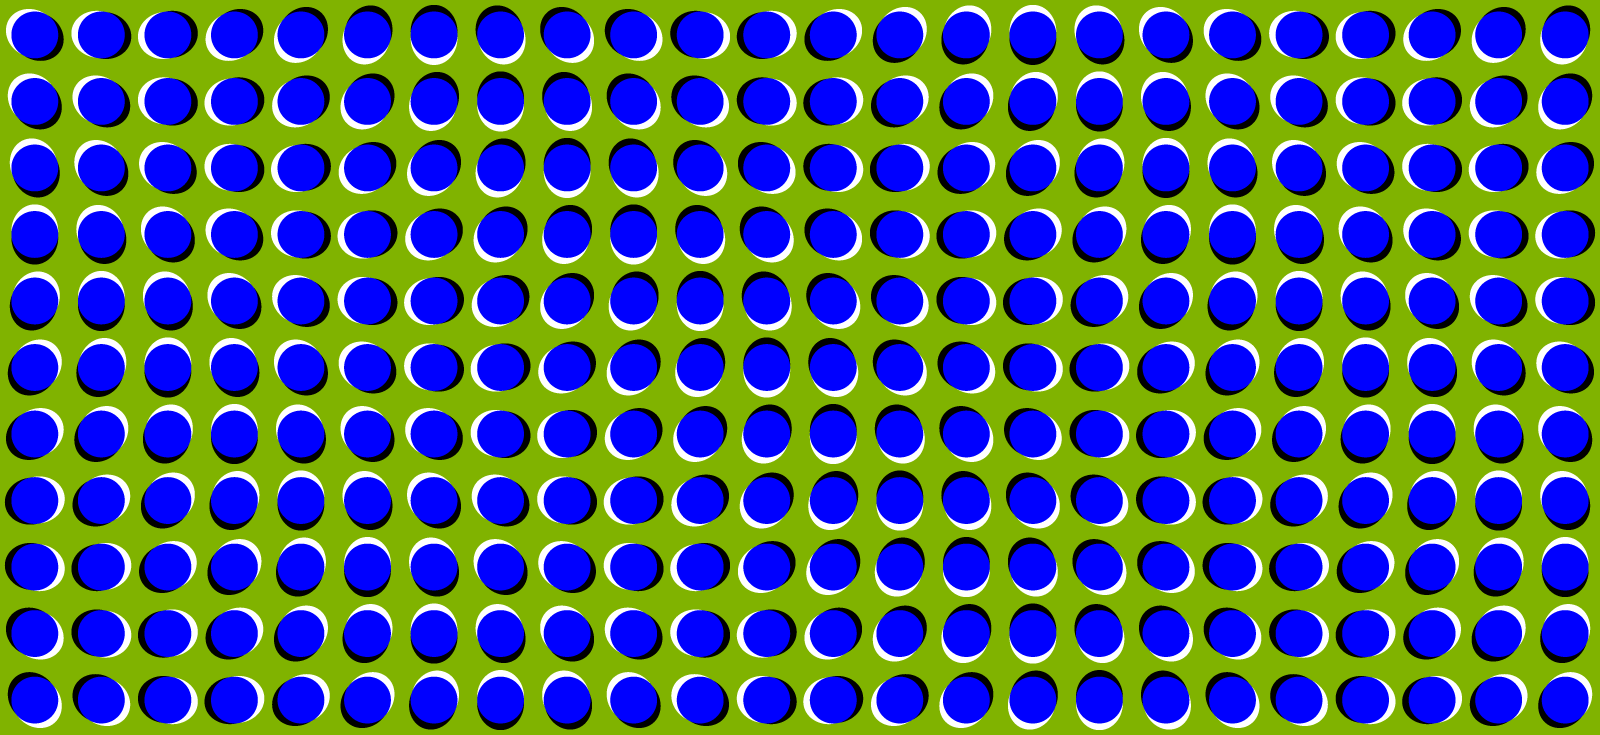 Hero image for Colour in Optical Illusions by Colin Shanley